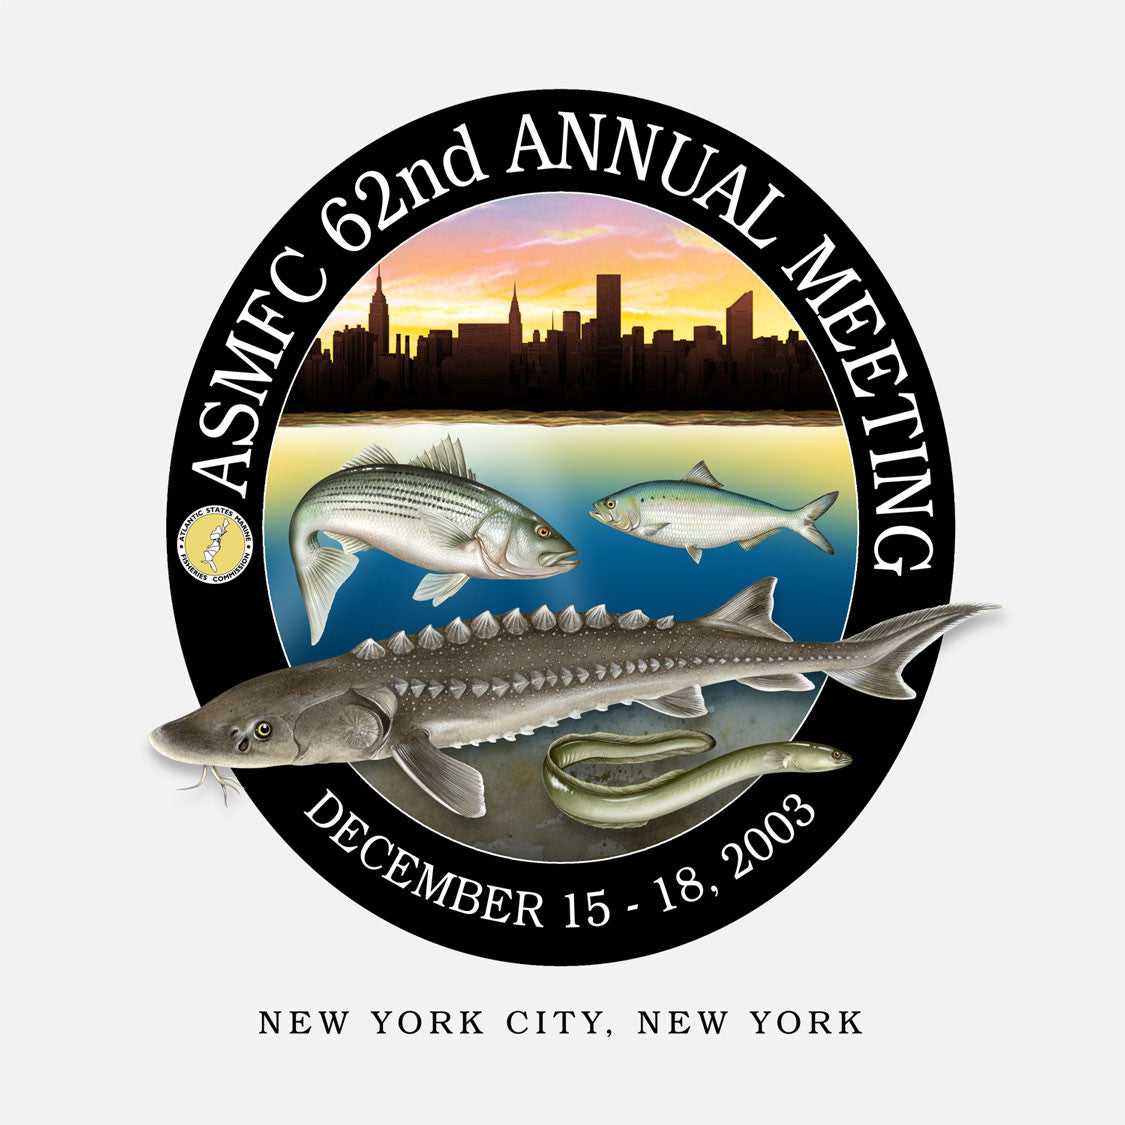 62nd annual meeting of the Atlantic States Marine Fisheries Commission, New York City, New York, 2003. The logo is of several fish species in front of a New York skyline.